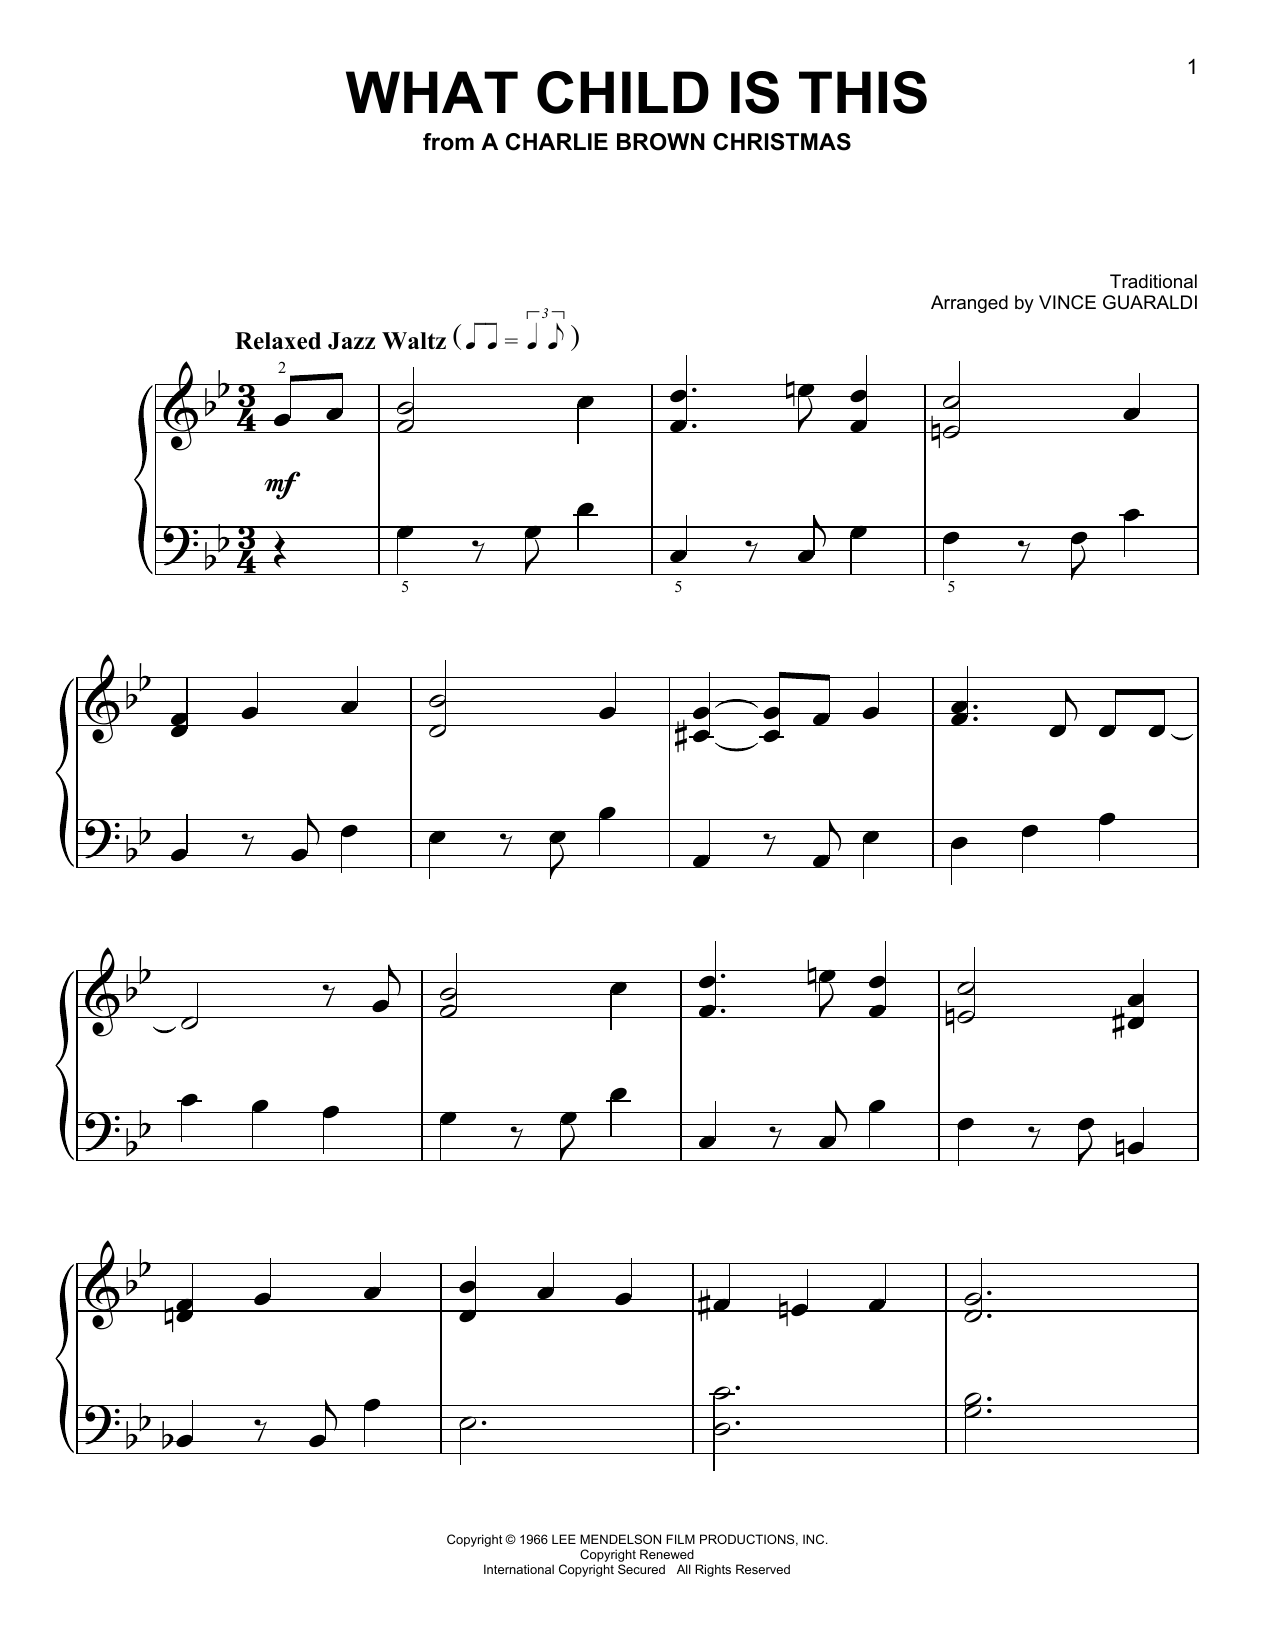 Vince Guaraldi Christmas.What Child Is This Vince Guaraldi Christmas Sheet Music